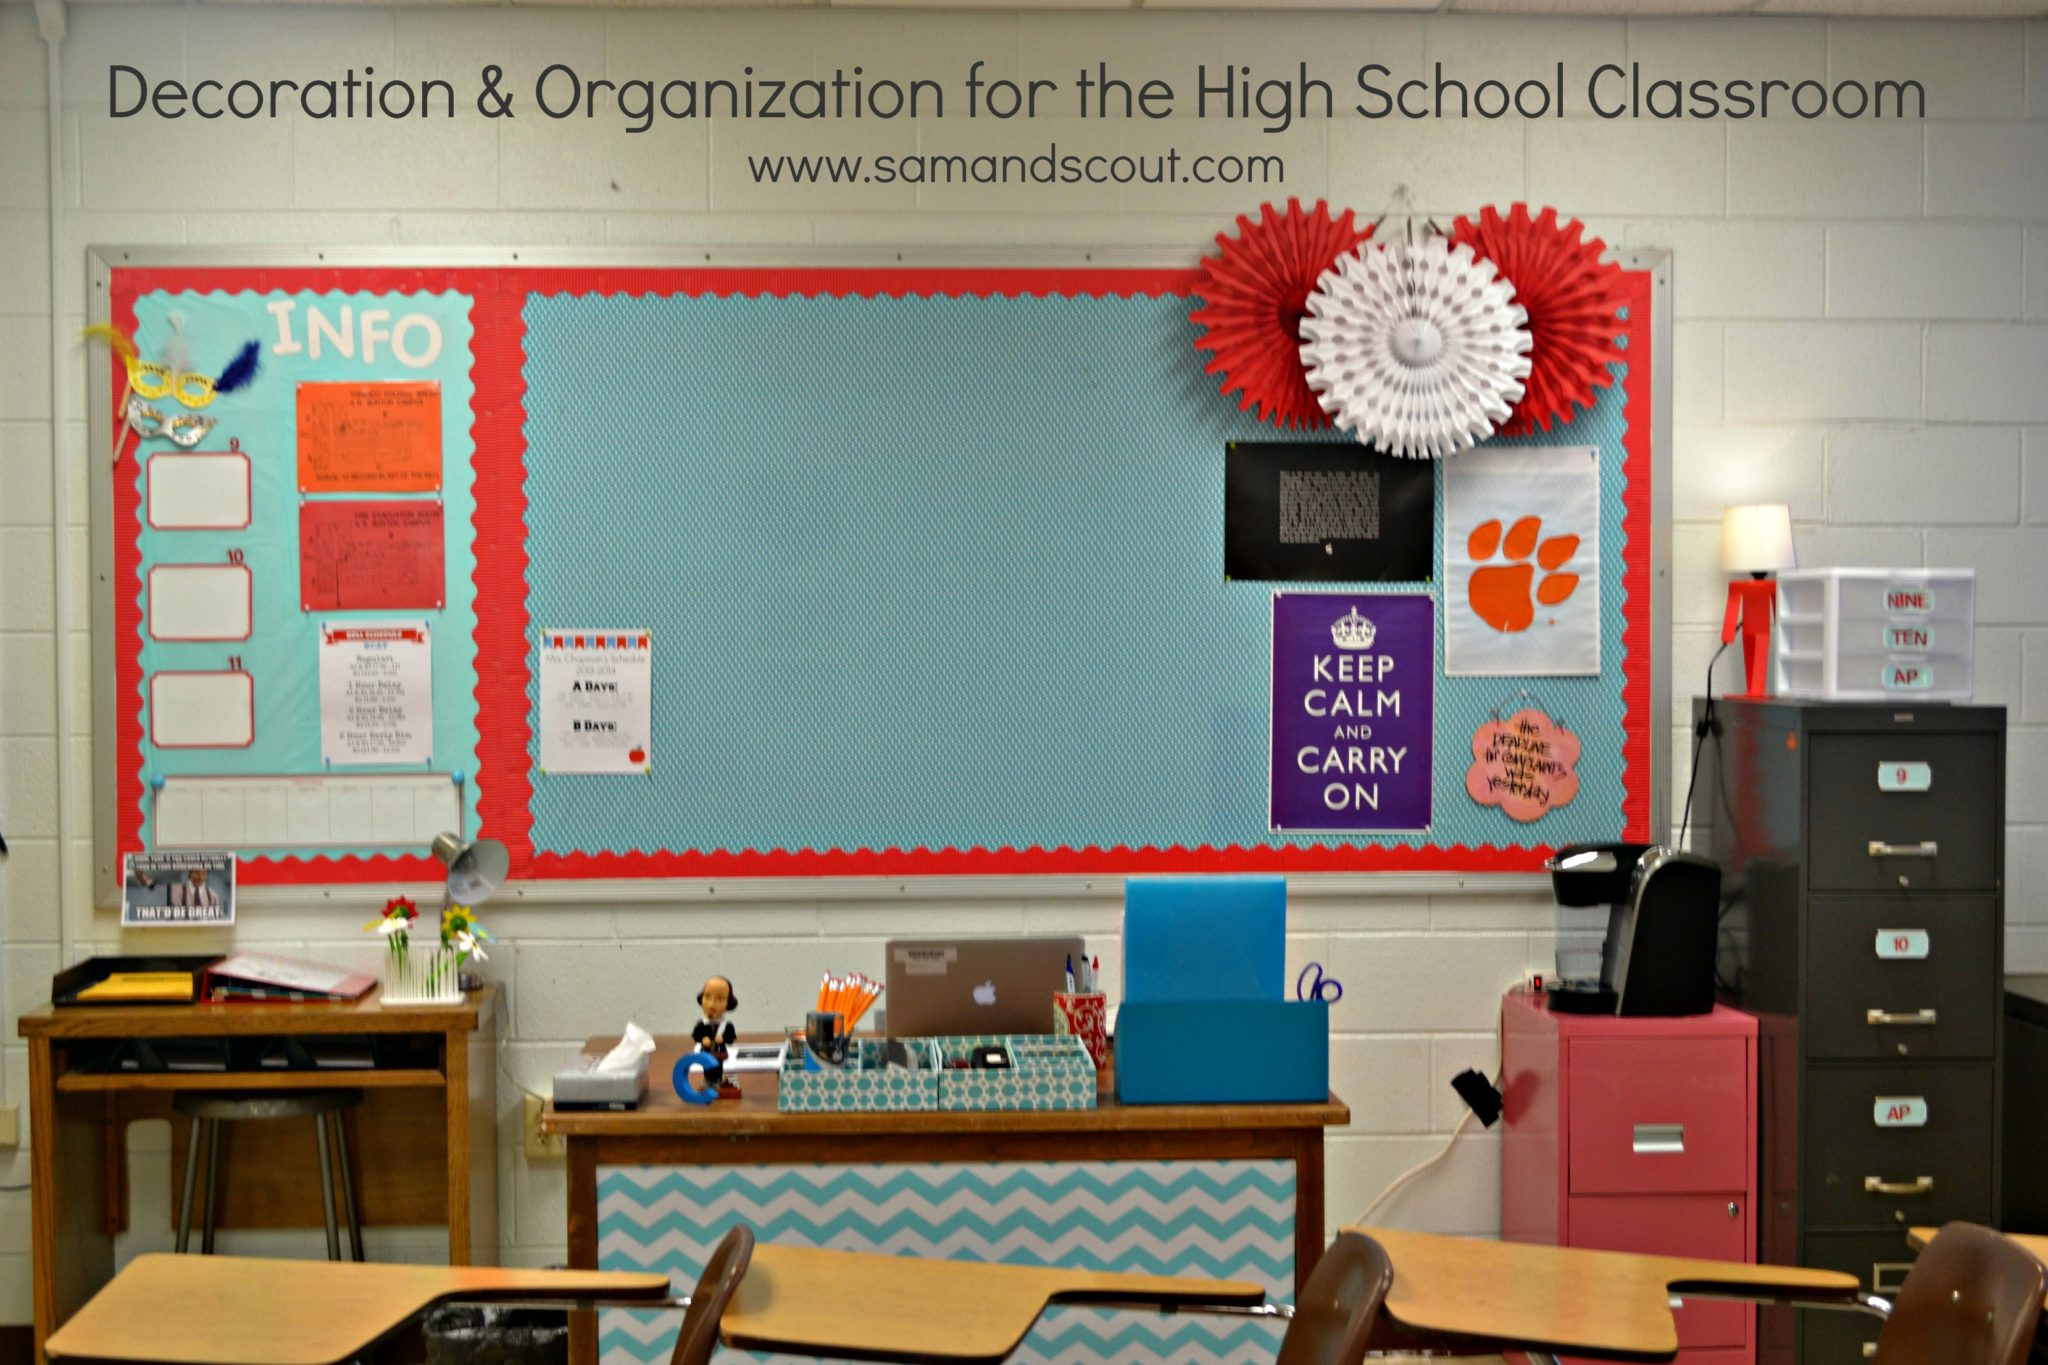 Classroom Design And Decoration ~ Decoration organization for the high school classroom